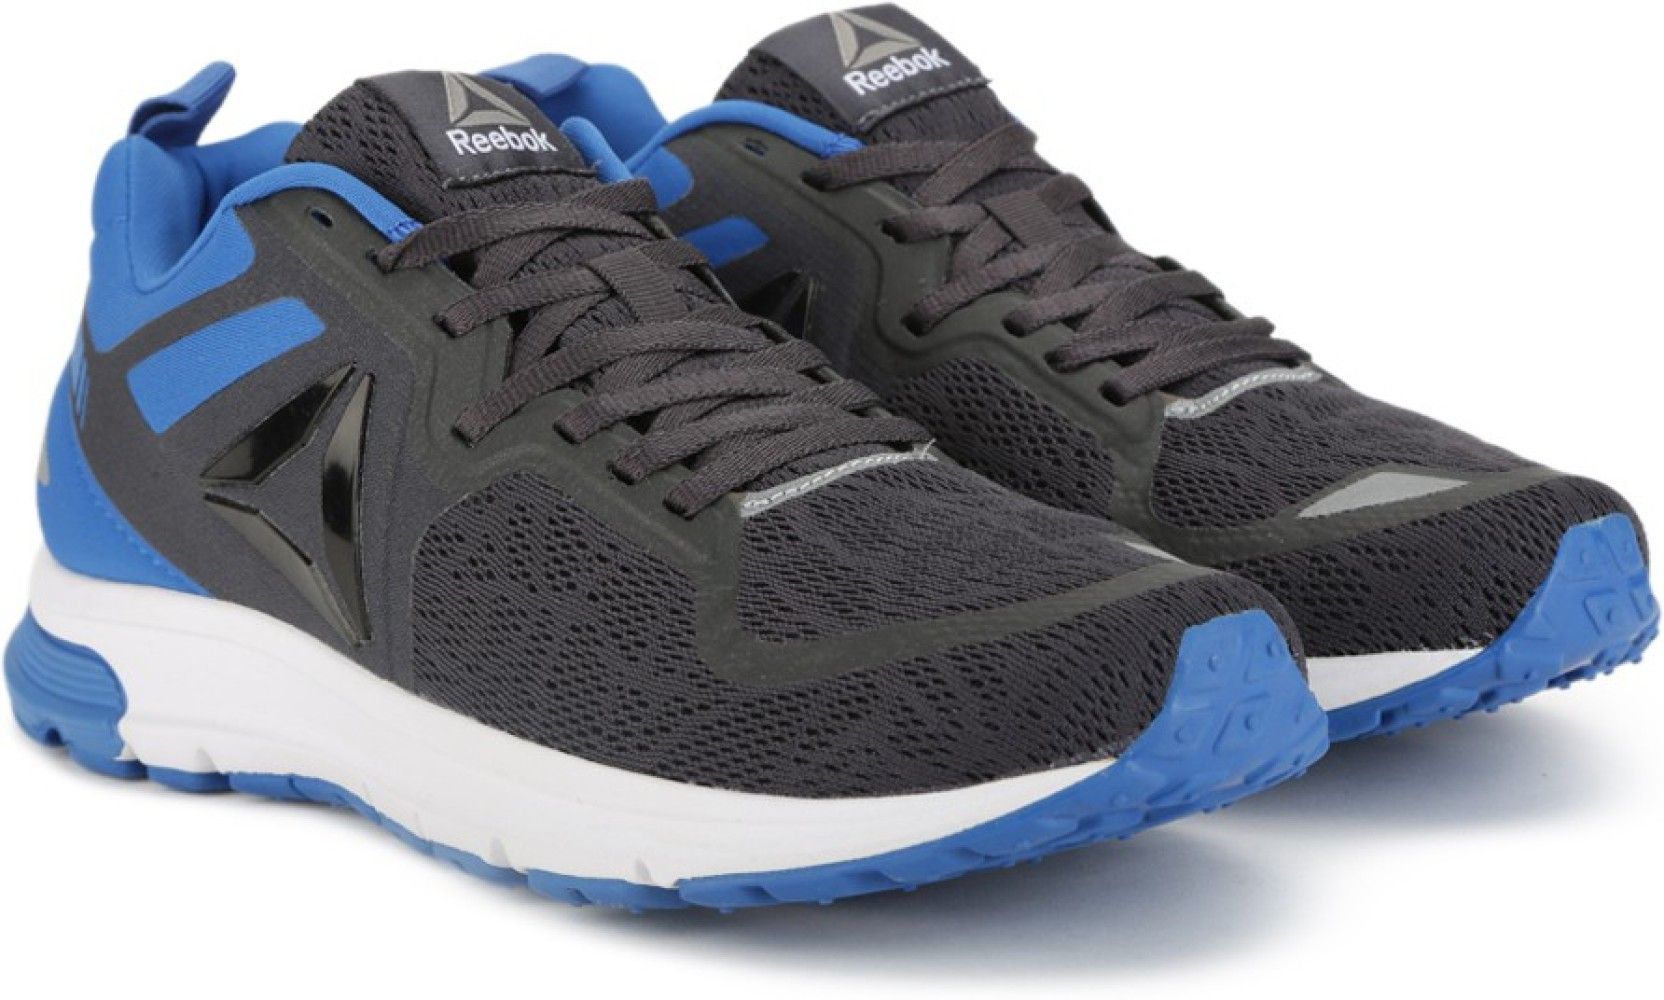 911525535b870b REEBOK ONE DISTANCE 2.0 Running Shoes For Men - Buy LEAD BLUE WHT ...